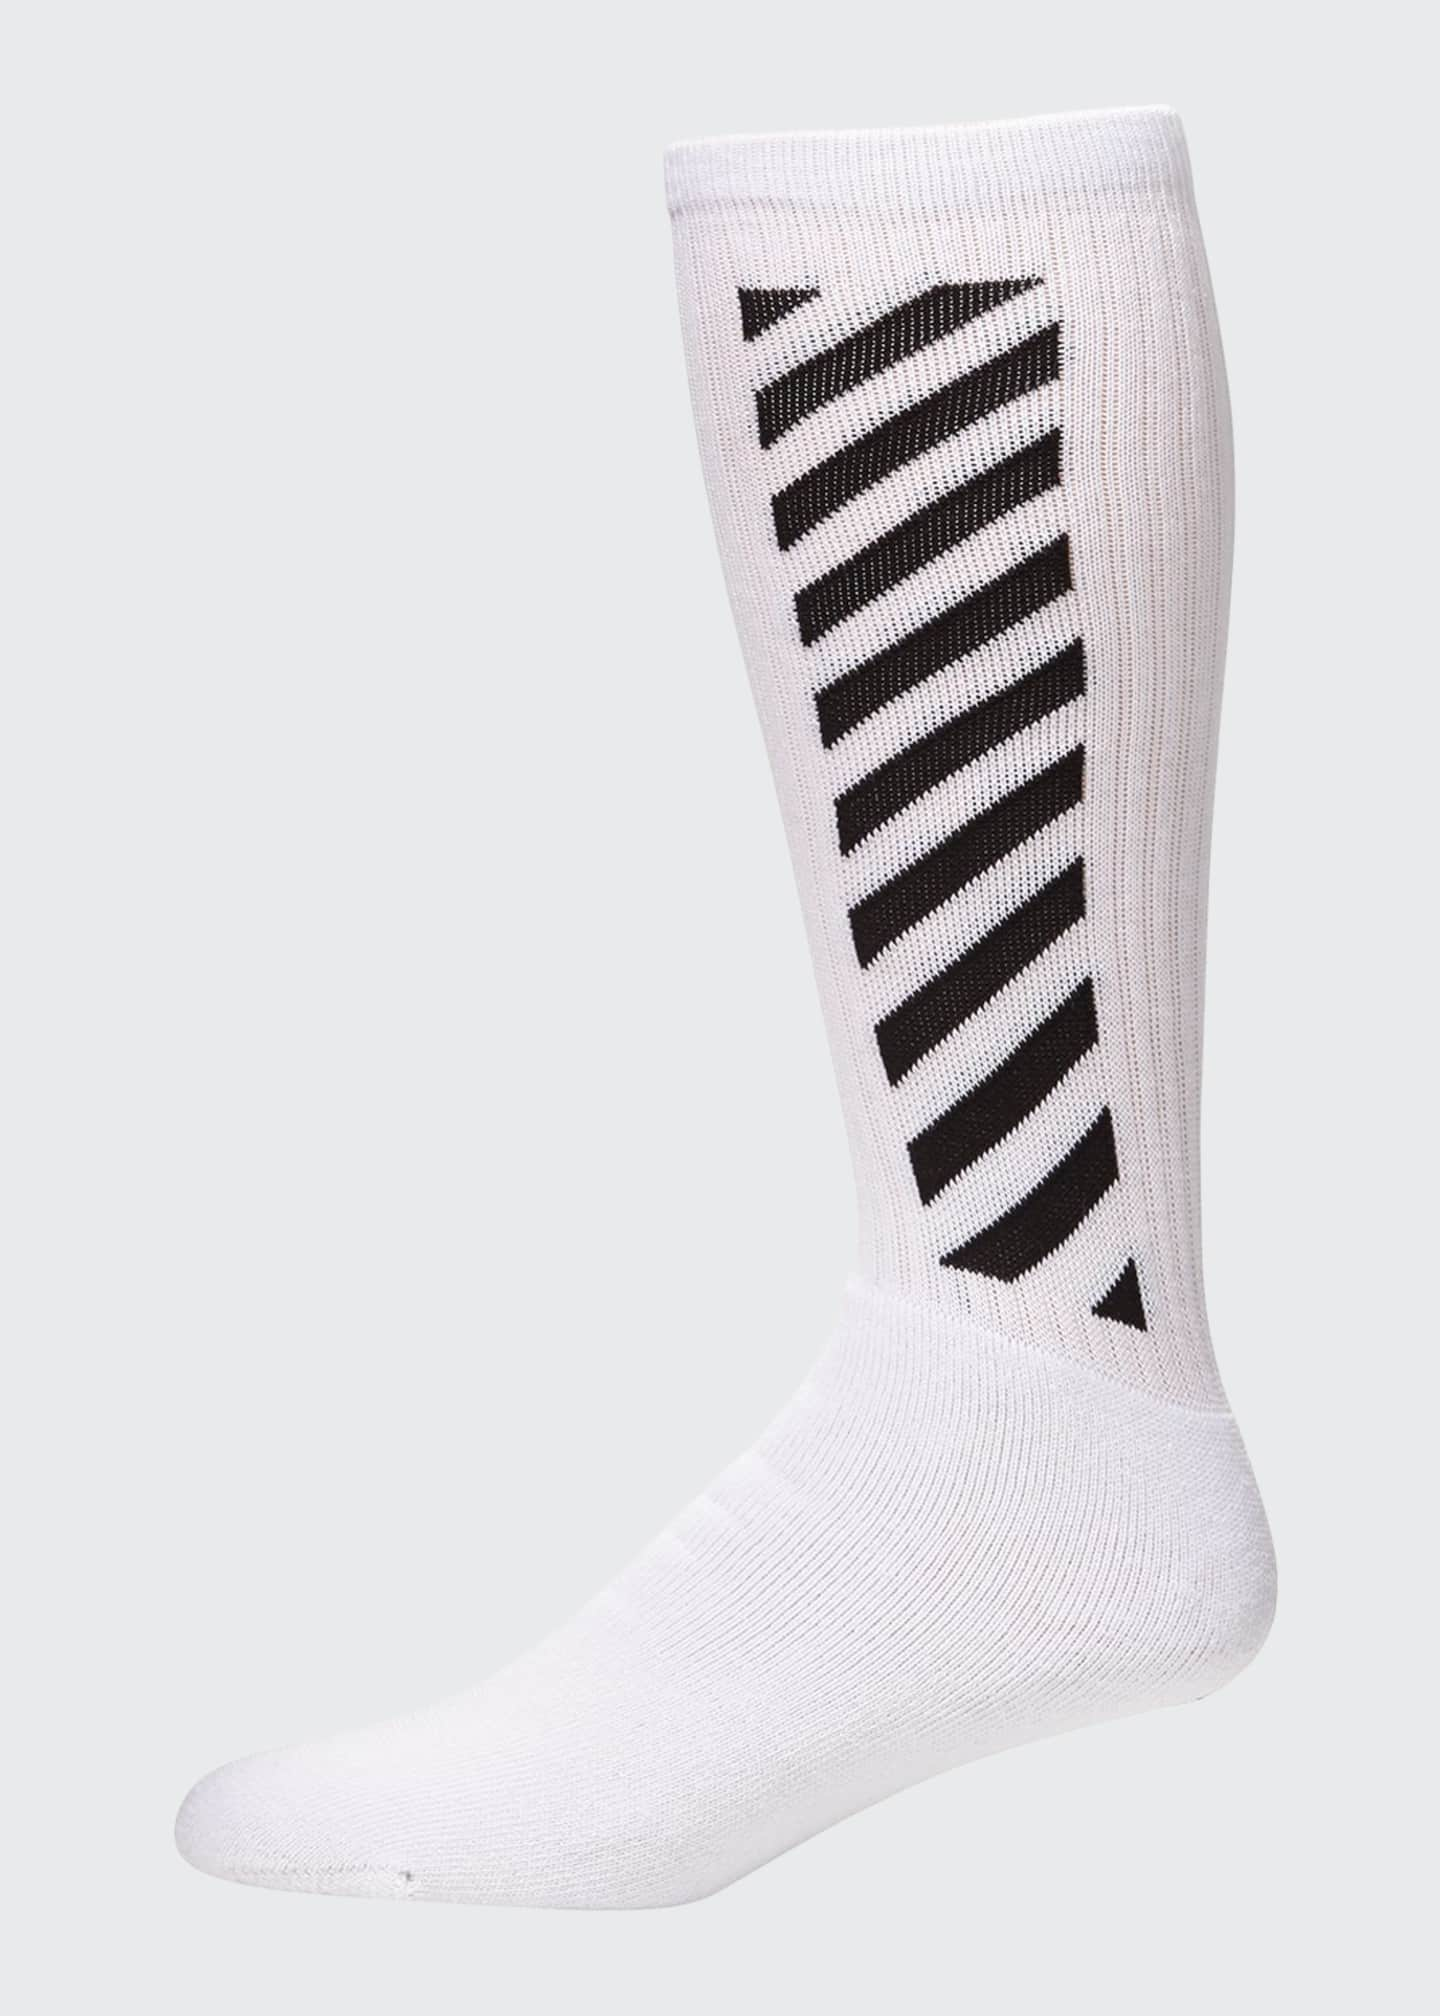 Off-White Men's Diagonal-Stripe Mid-Length Socks